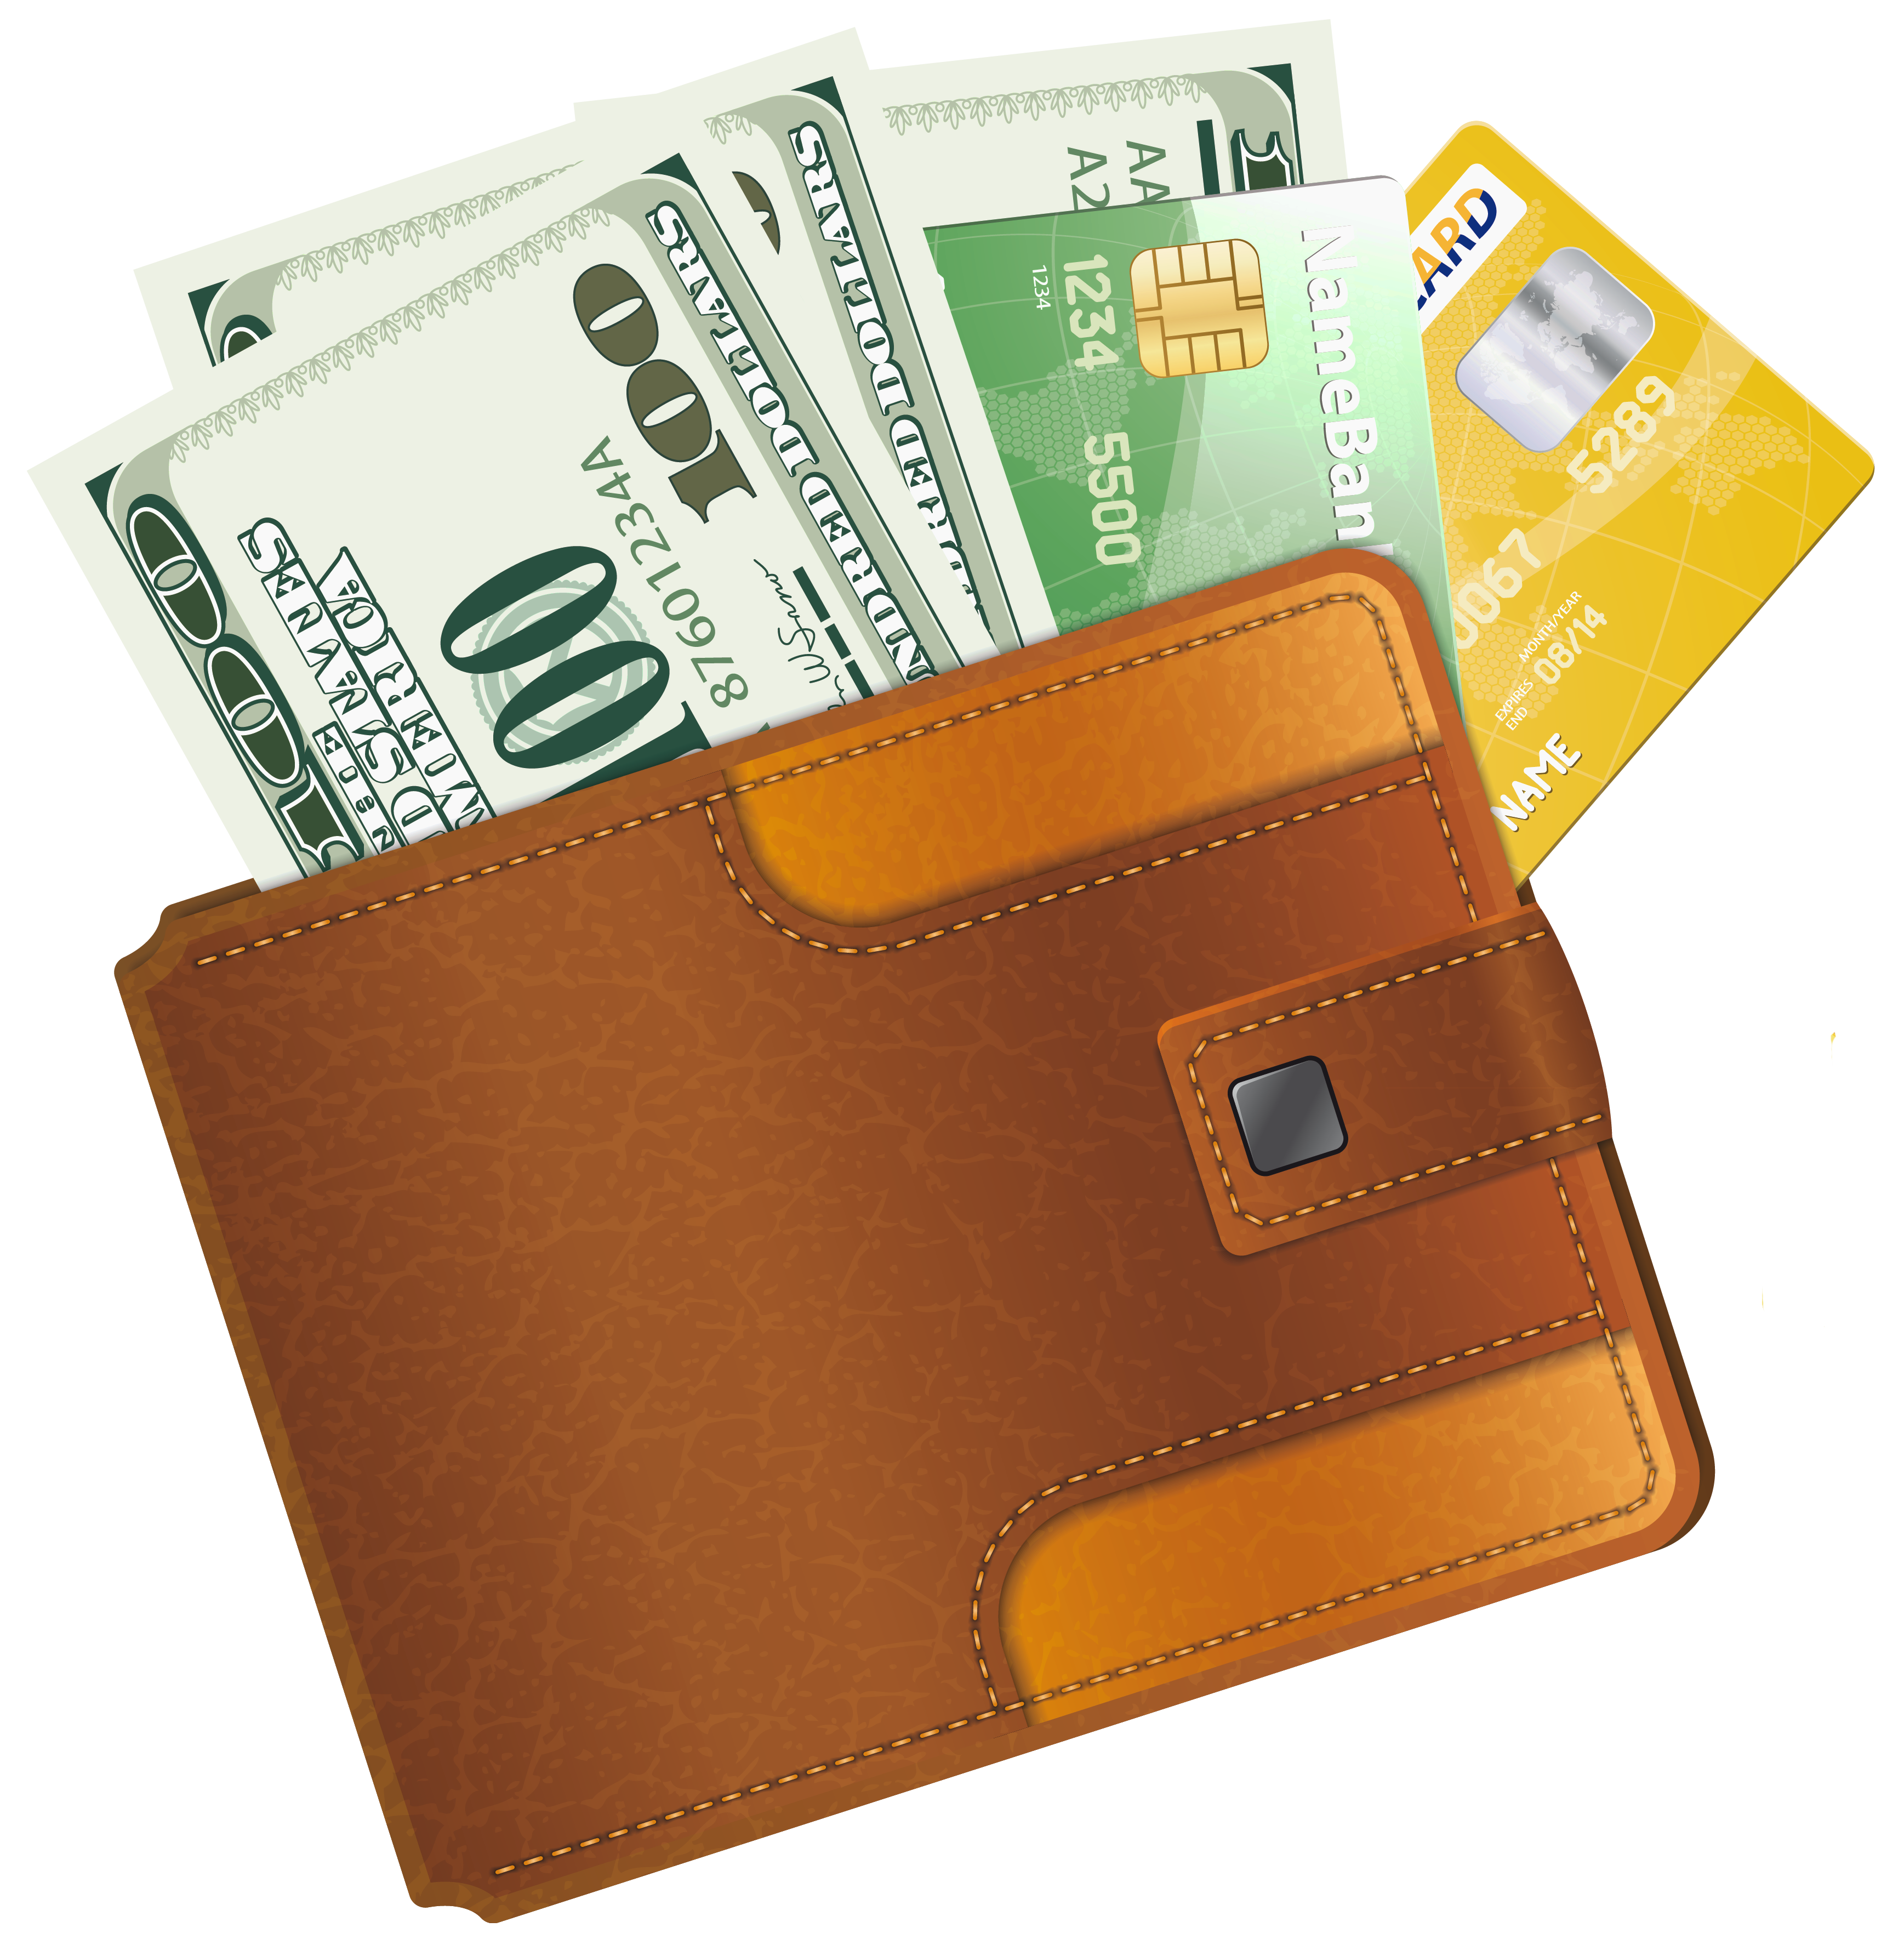 Wallet With Credit Cards PNG Image